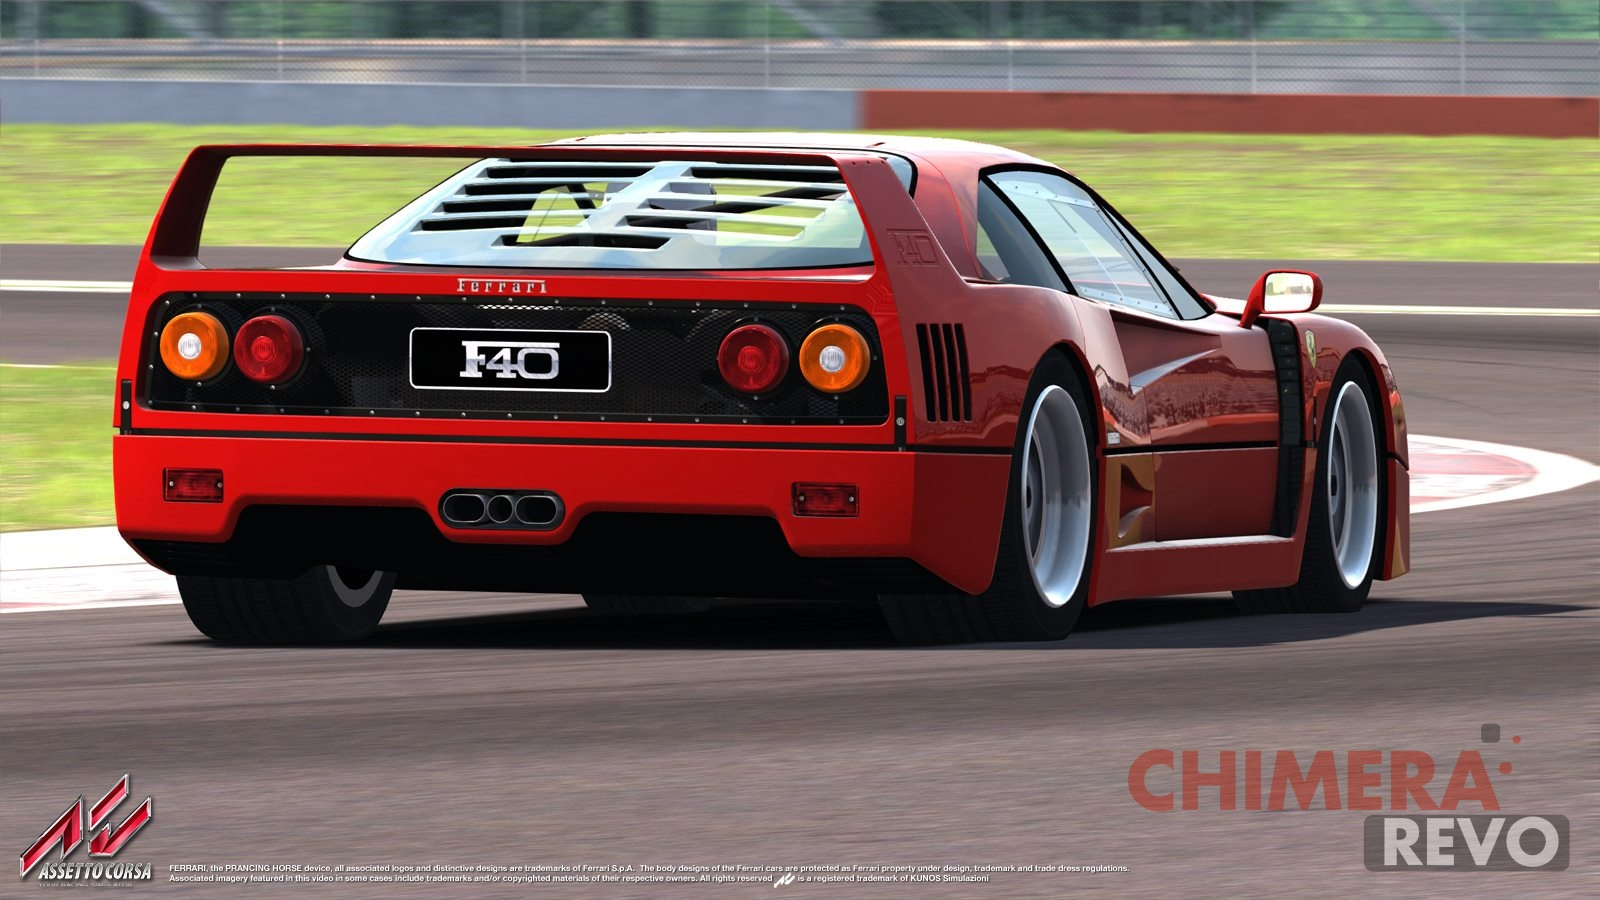 Assetto Corsa Ferrari F40 Preview